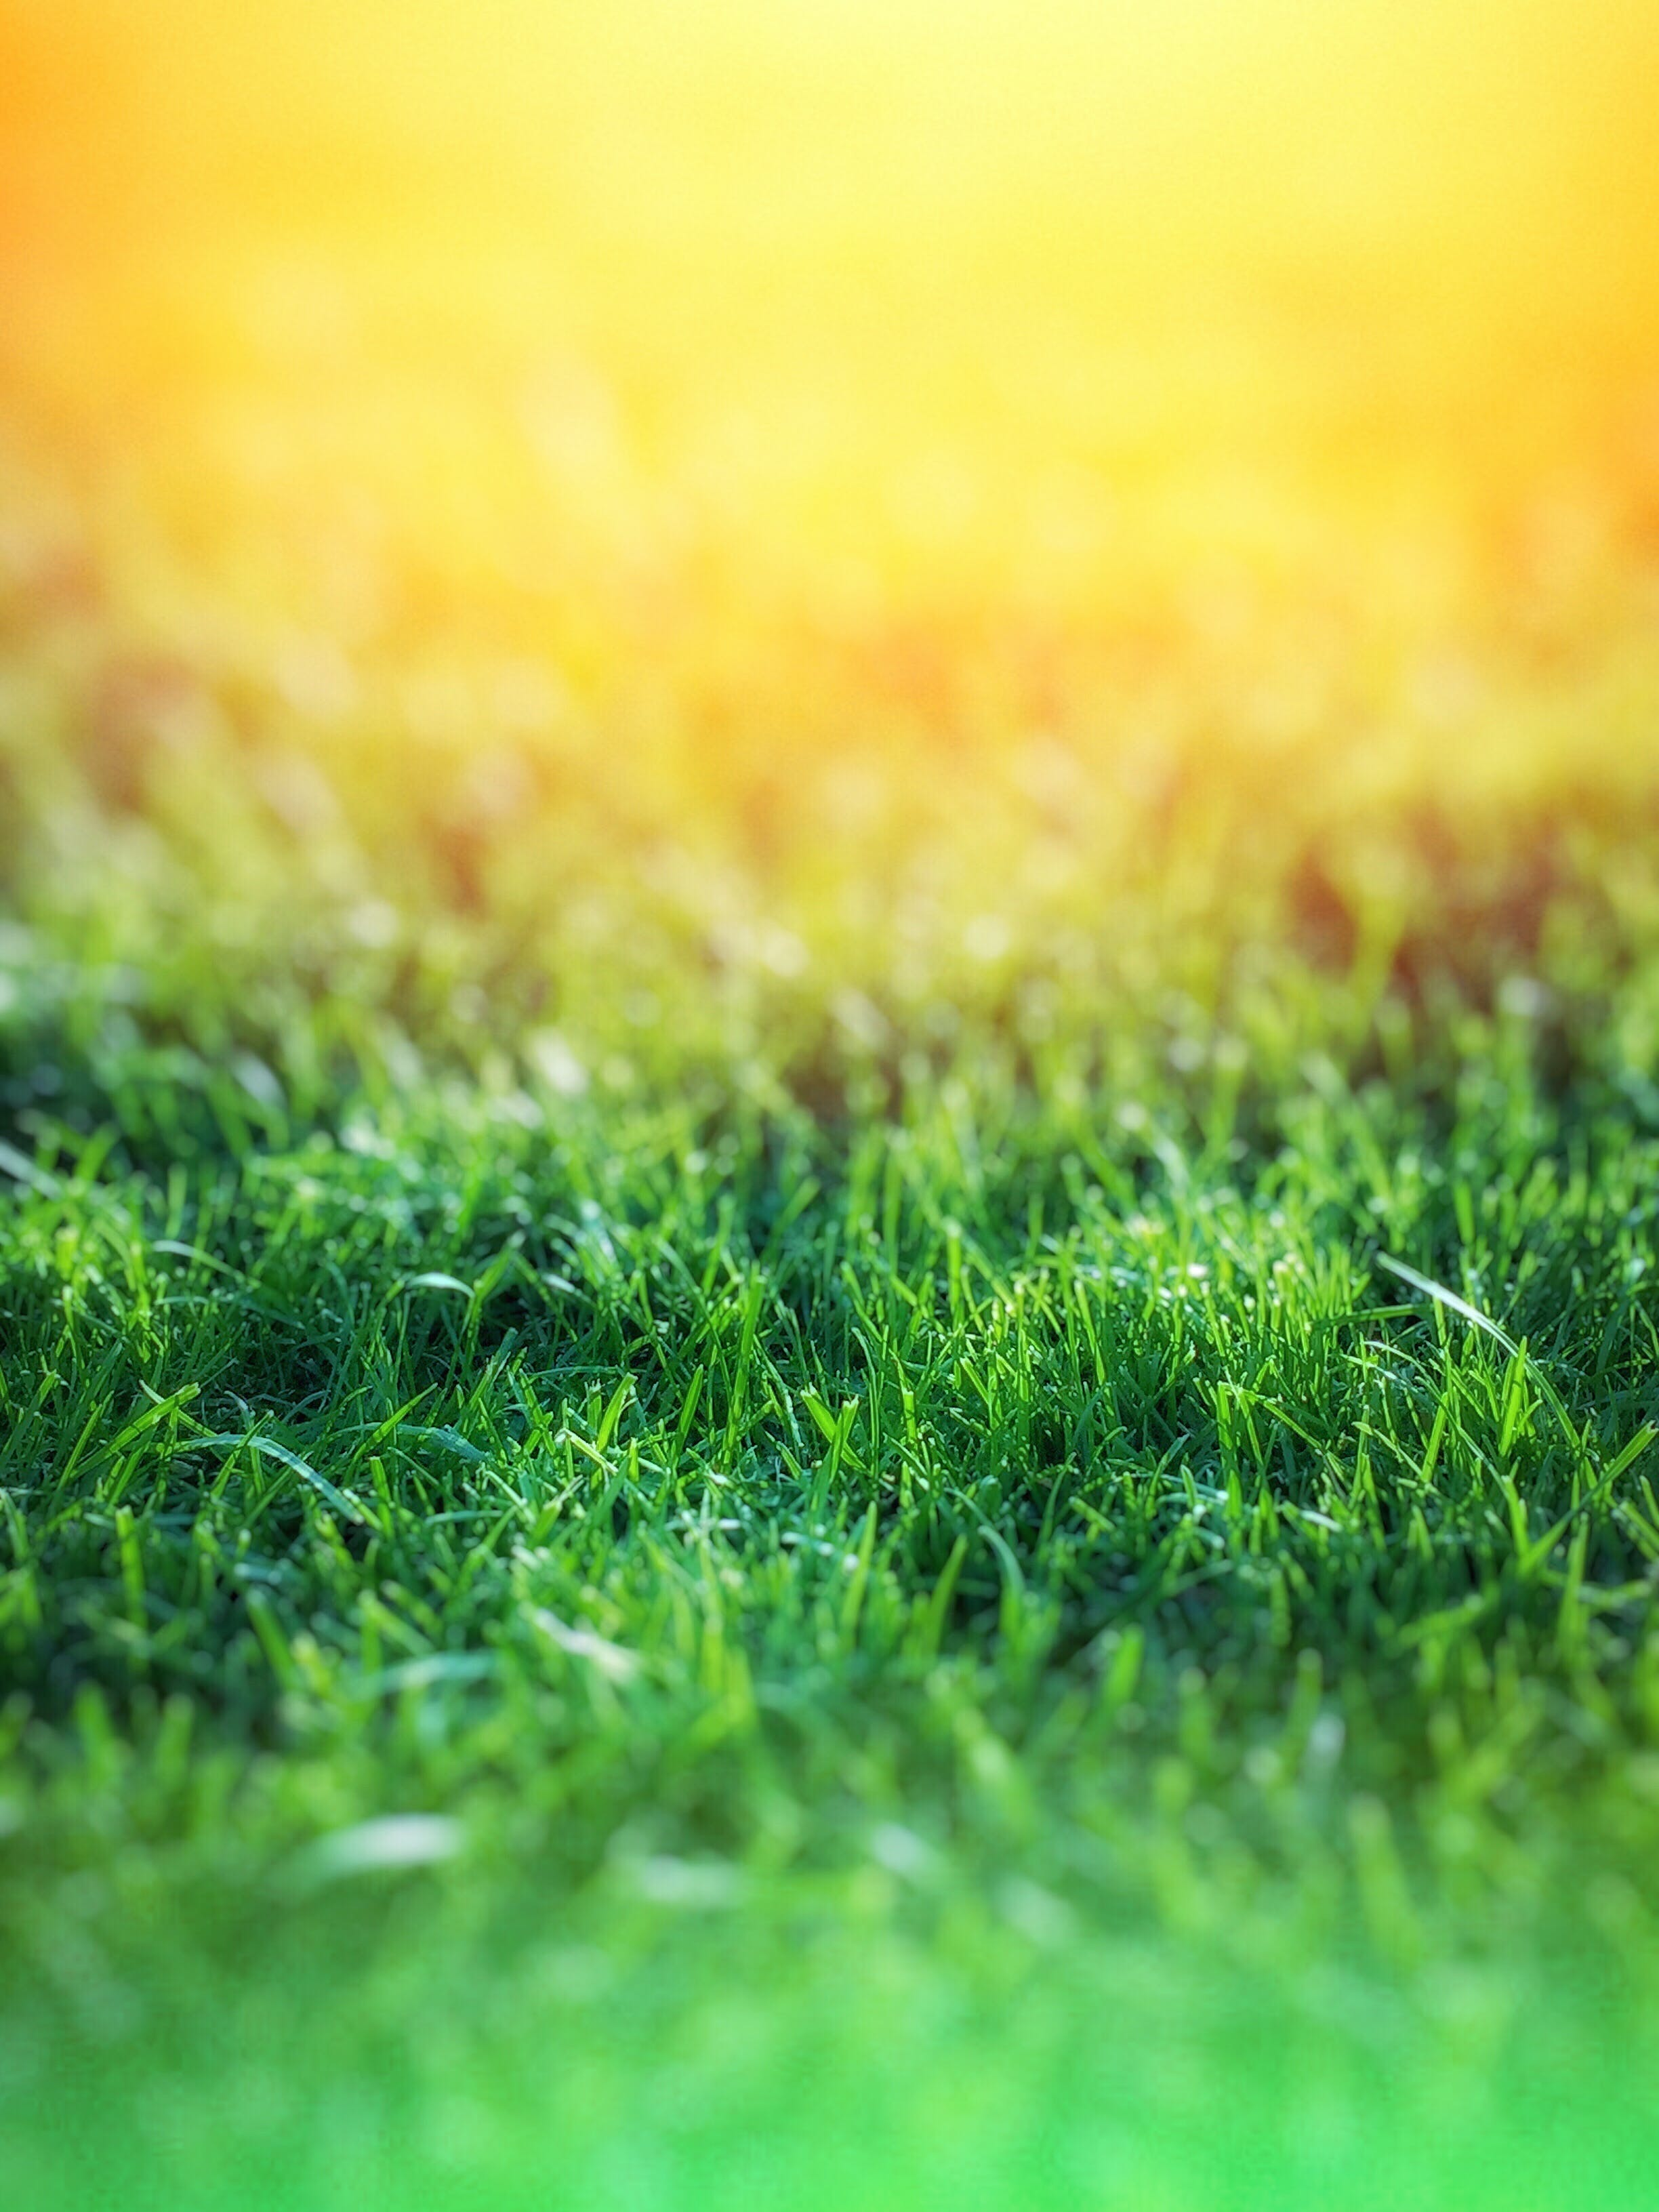 Green Grass over Yellow Background